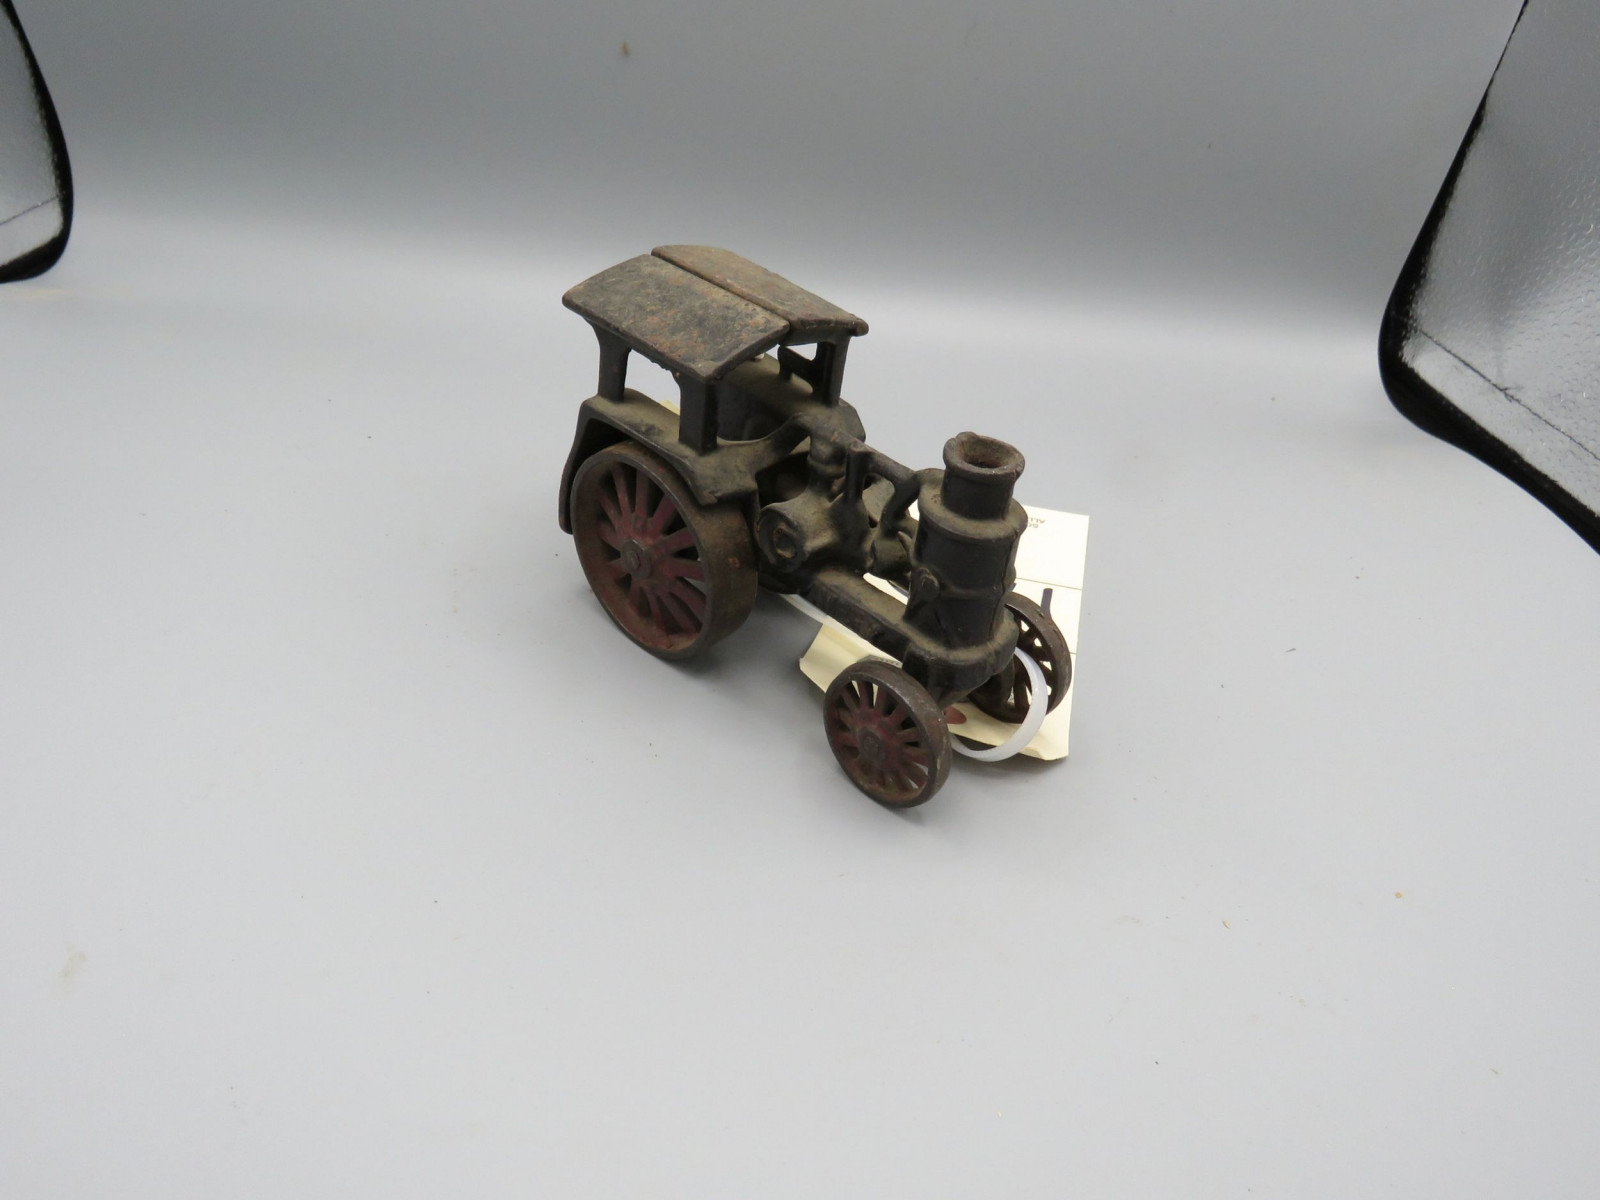 Vintage Cast Iron Avery Steam Traction Tractor @1921 Approx. 9 inches - Image 2